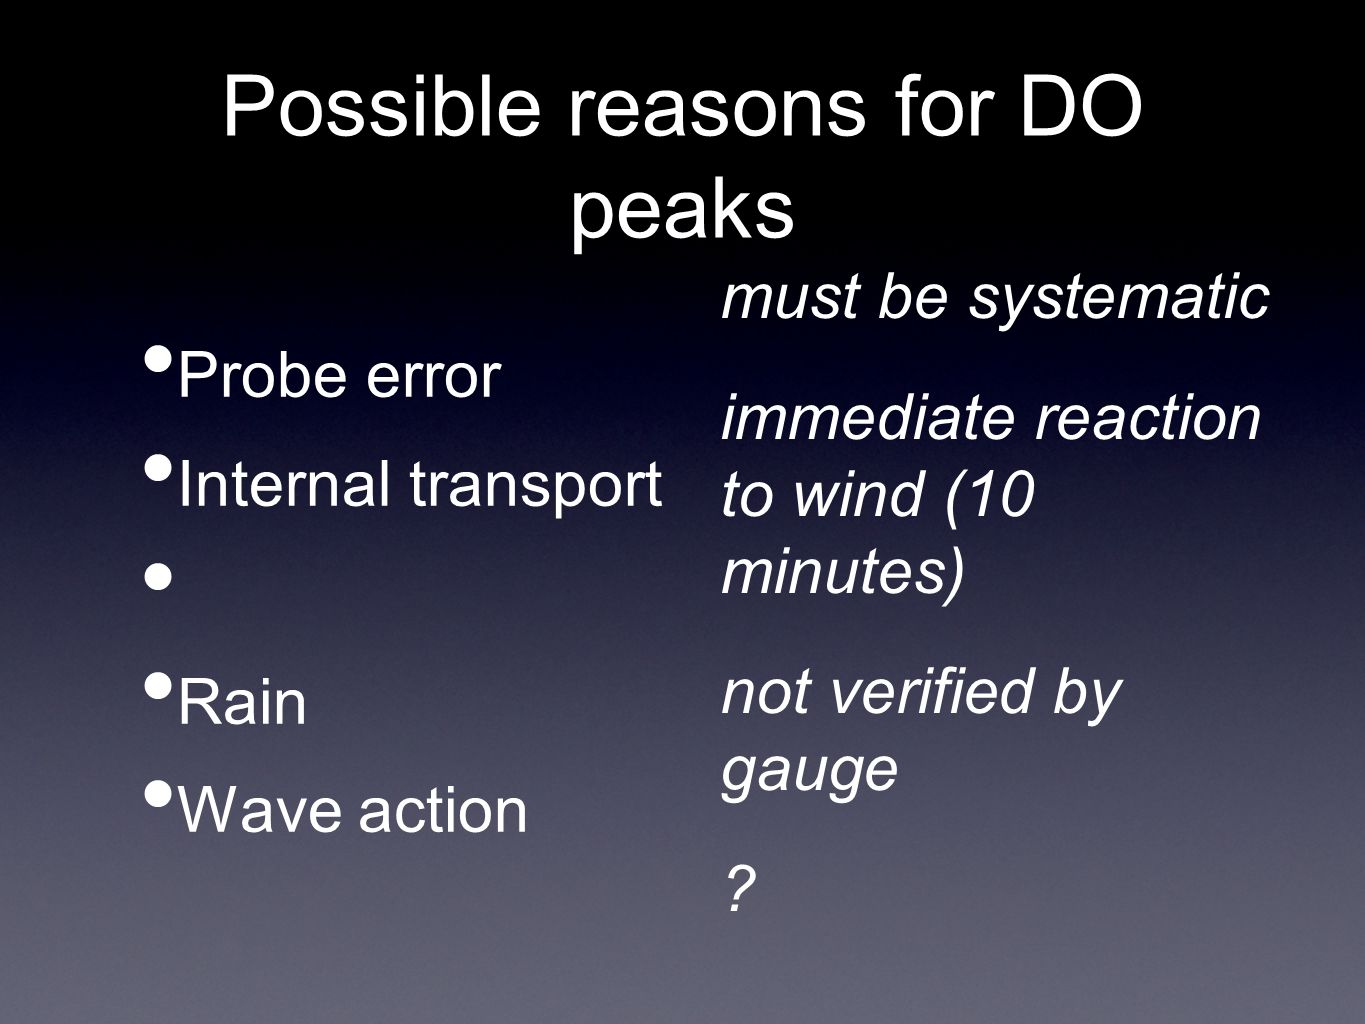 Possible reasons for DO peaks Probe error Internal transport Rain Wave action must be systematic immediate reaction to wind (10 minutes) not verified